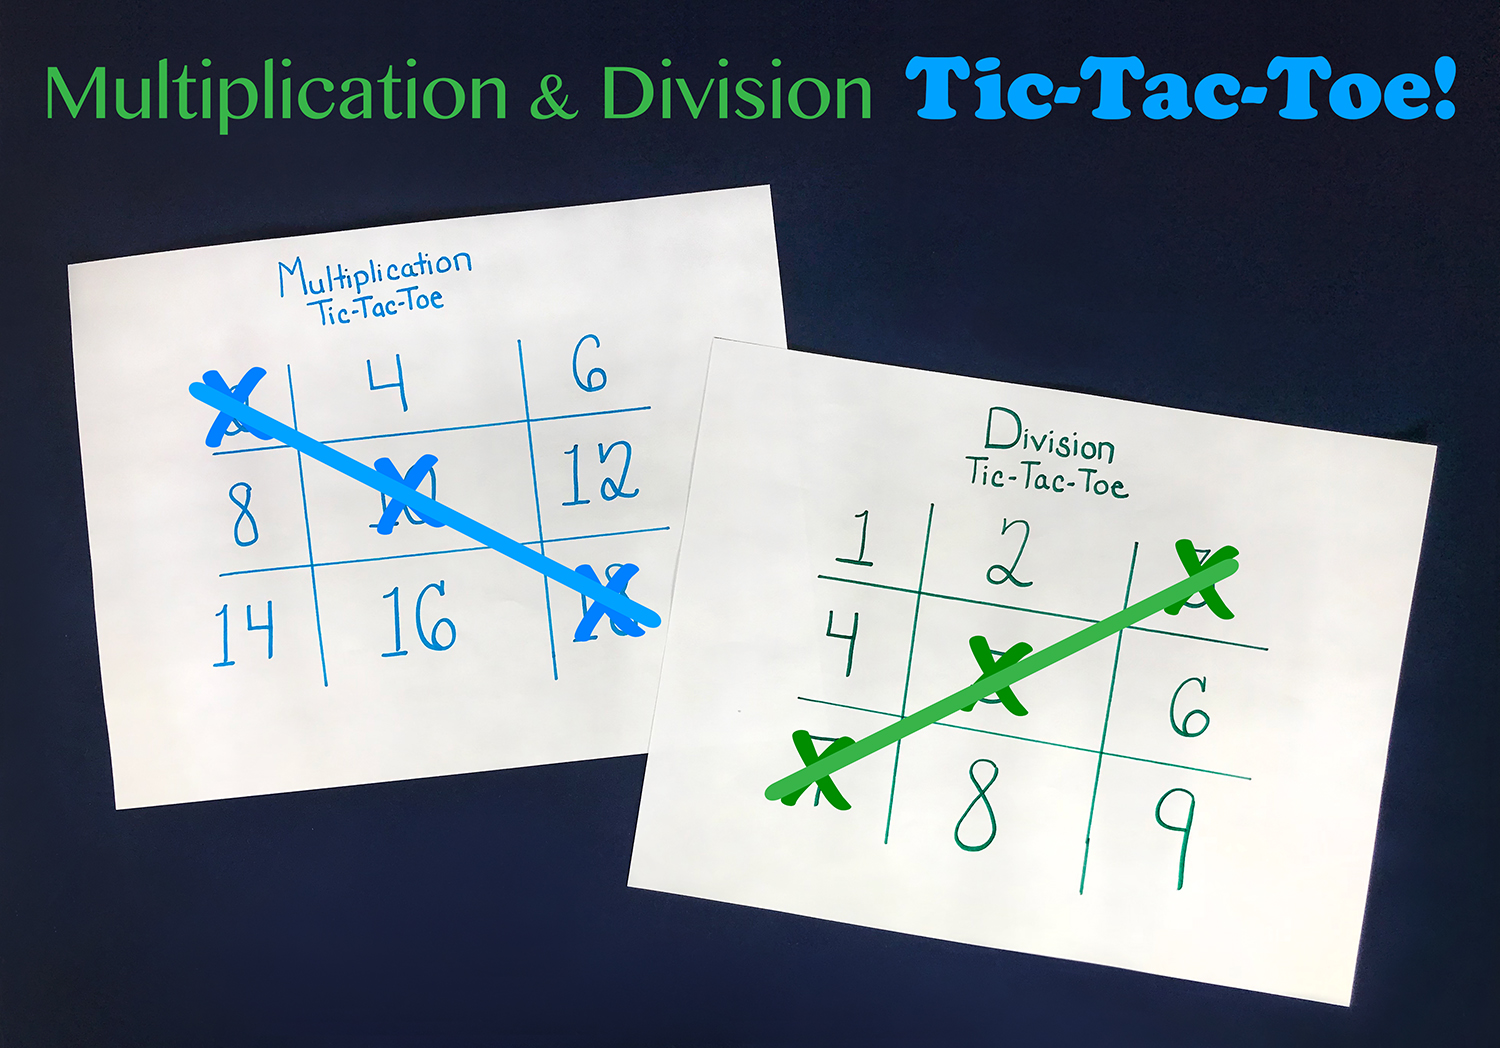 Multiplication and Division Tic-Tac-Toe